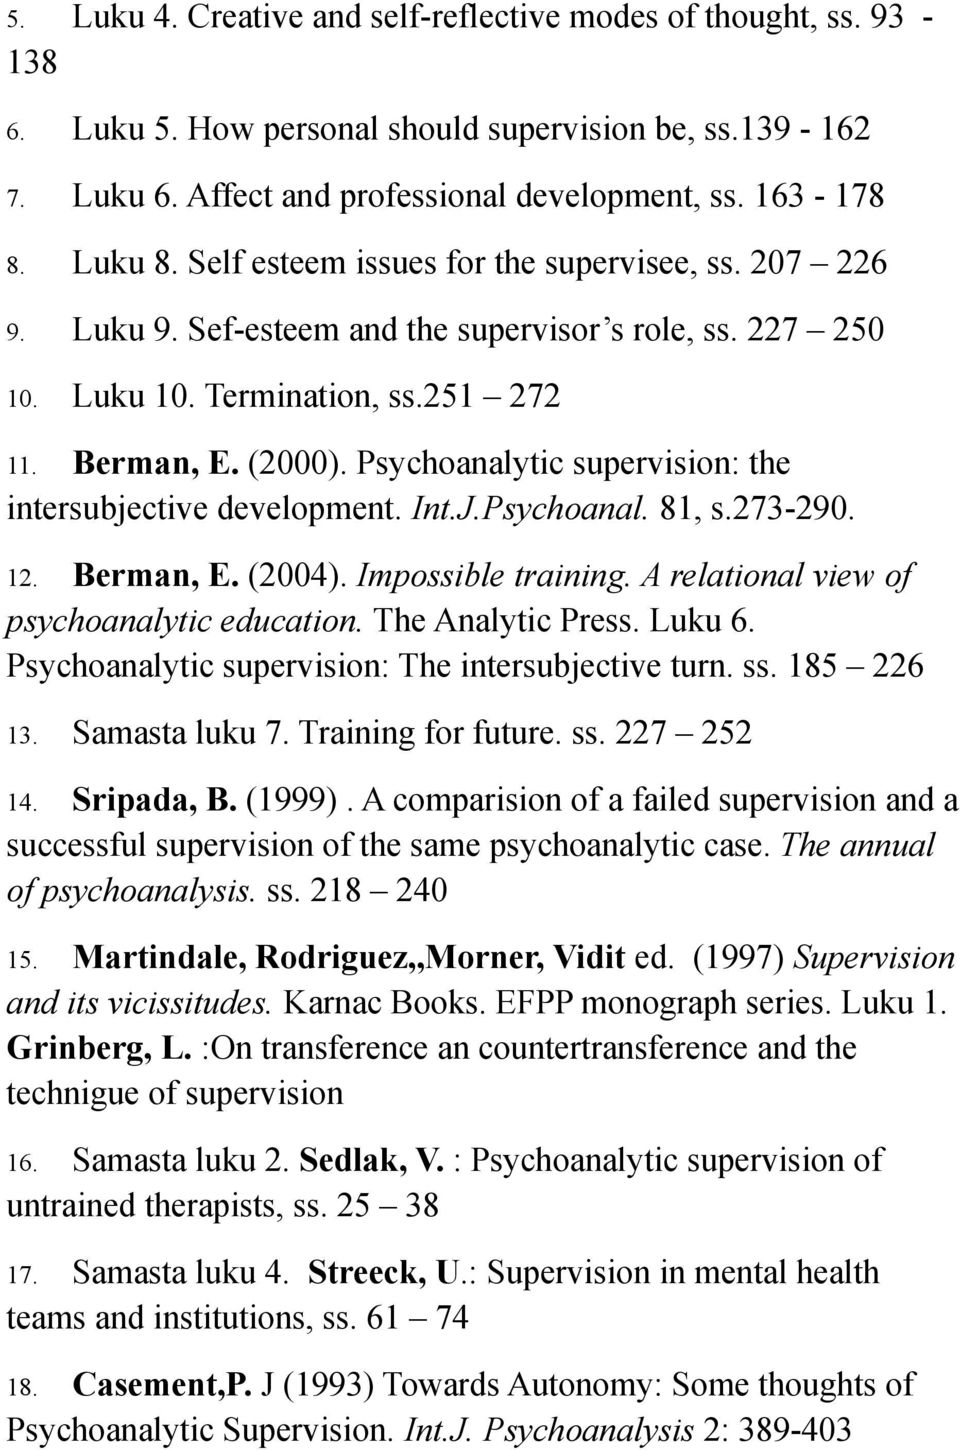 Psychoanalytic supervision: the intersubjective development. Int.J.Psychoanal. 81, s.273-290. 12. Berman, E. (2004). Impossible training. A relational view of psychoanalytic education.